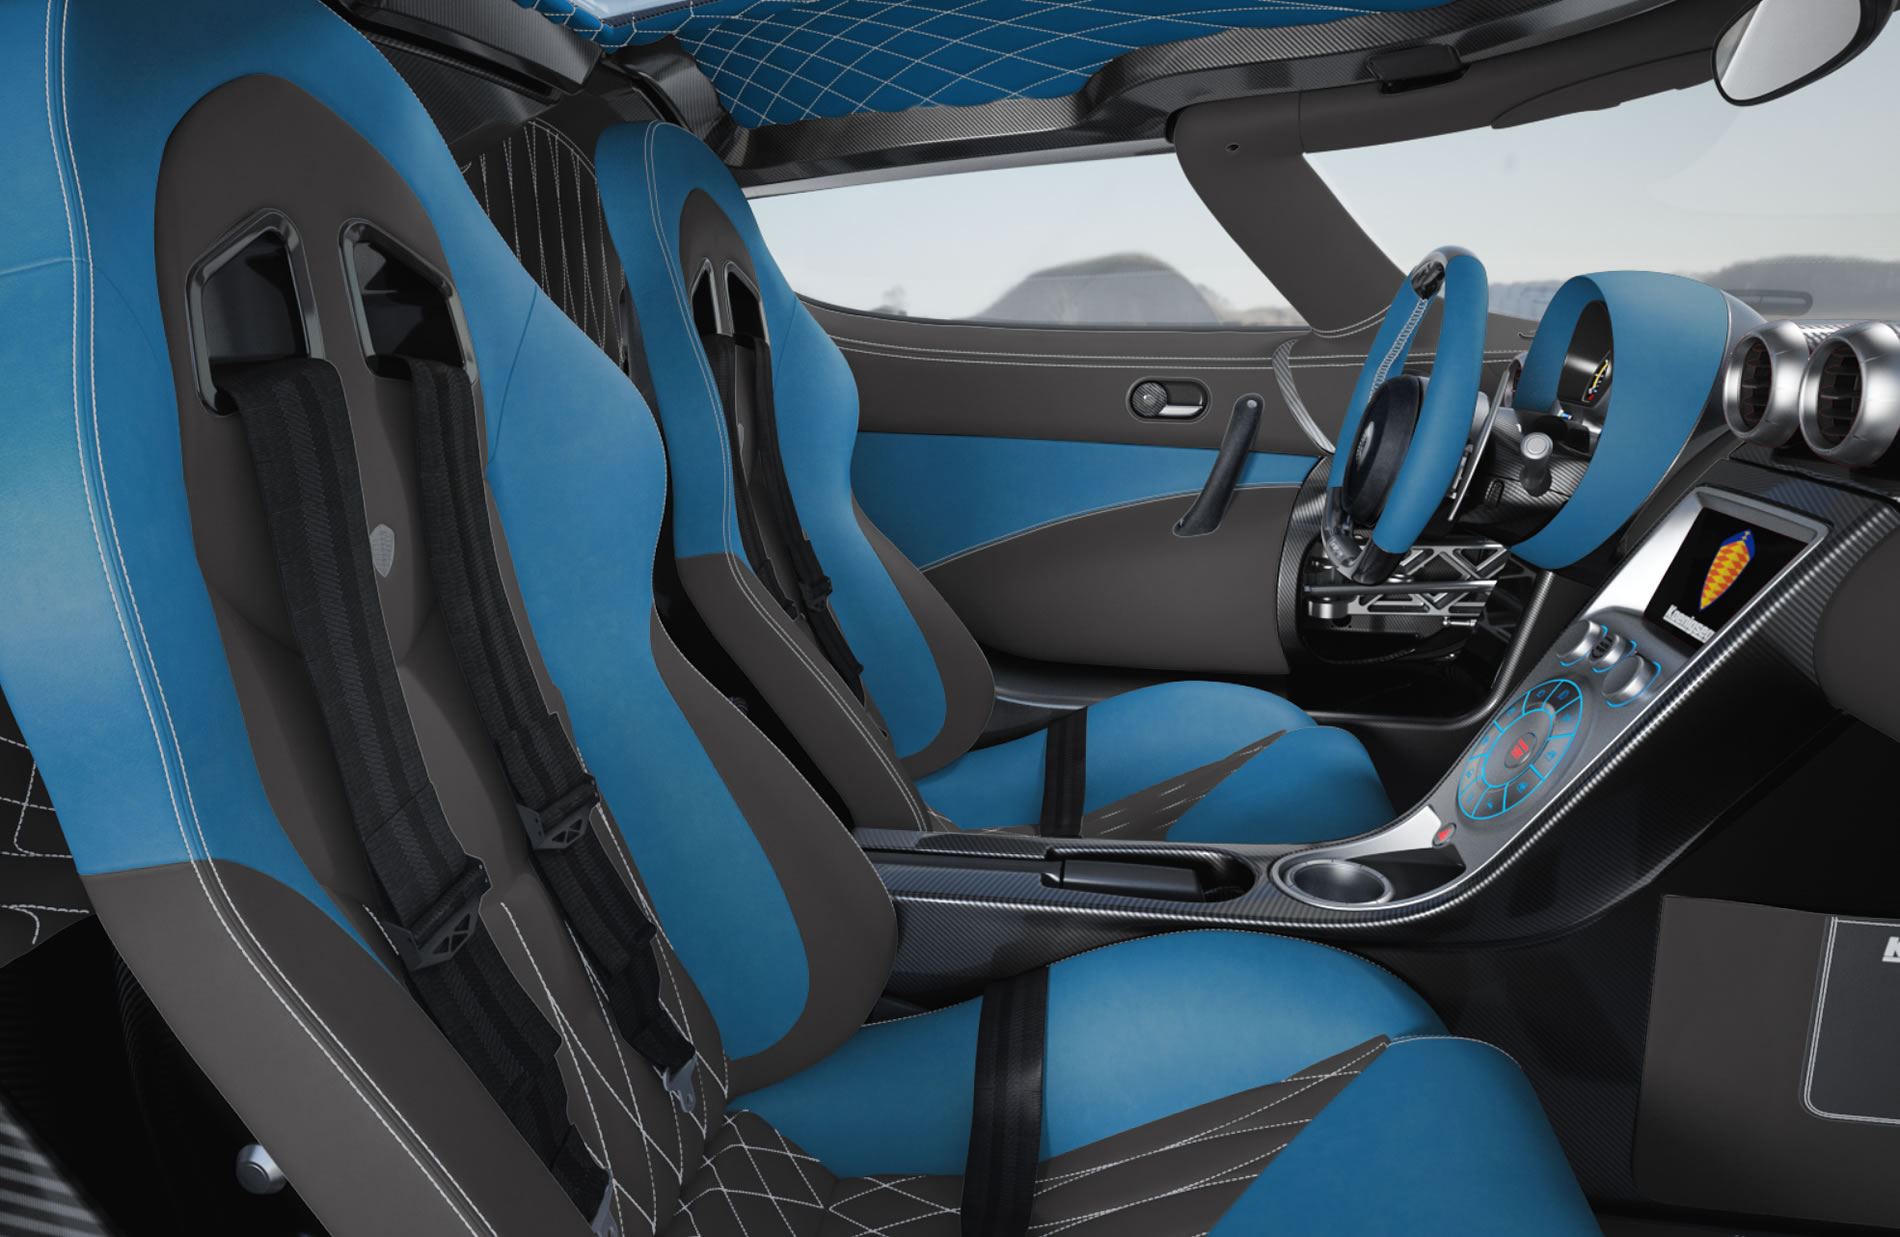 Koenigsegg Interior 2014 by Koenigsegg are allowed